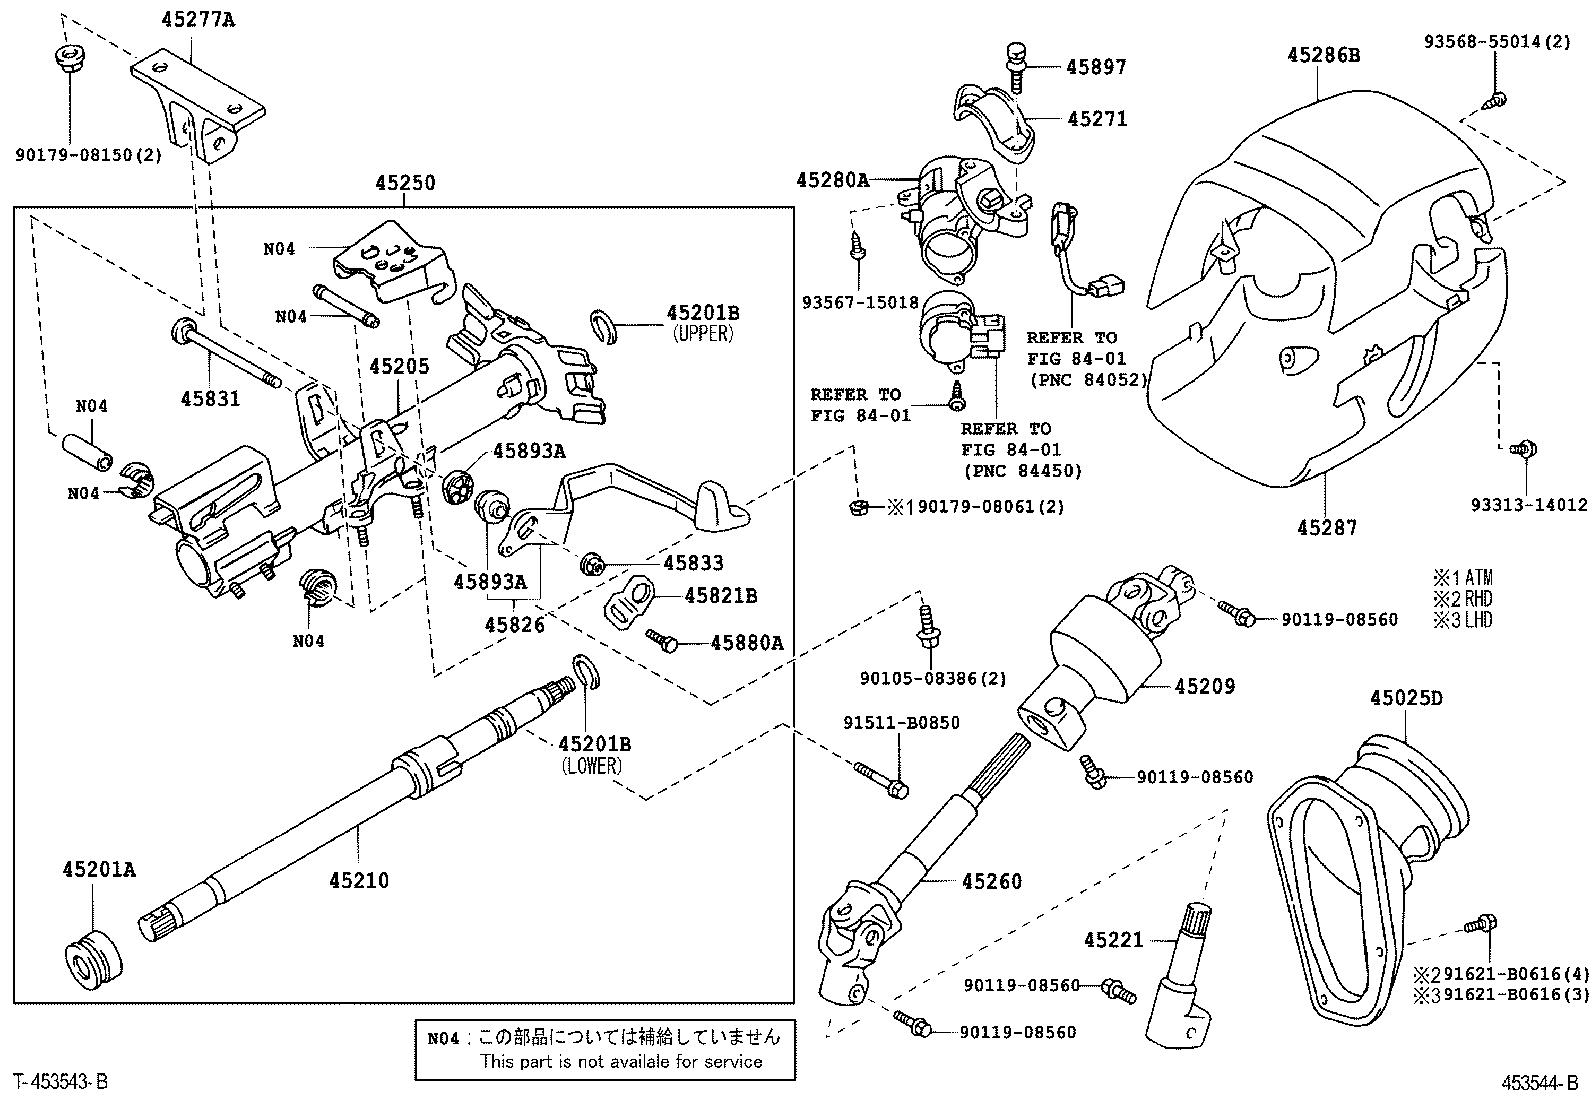 Toyota Previa Steering Diagram Electrical Wiring Diagrams 1992 Engine Taragoclr30l Mfmdtw Powertrain Chassis 1994 Camry Tarago Column